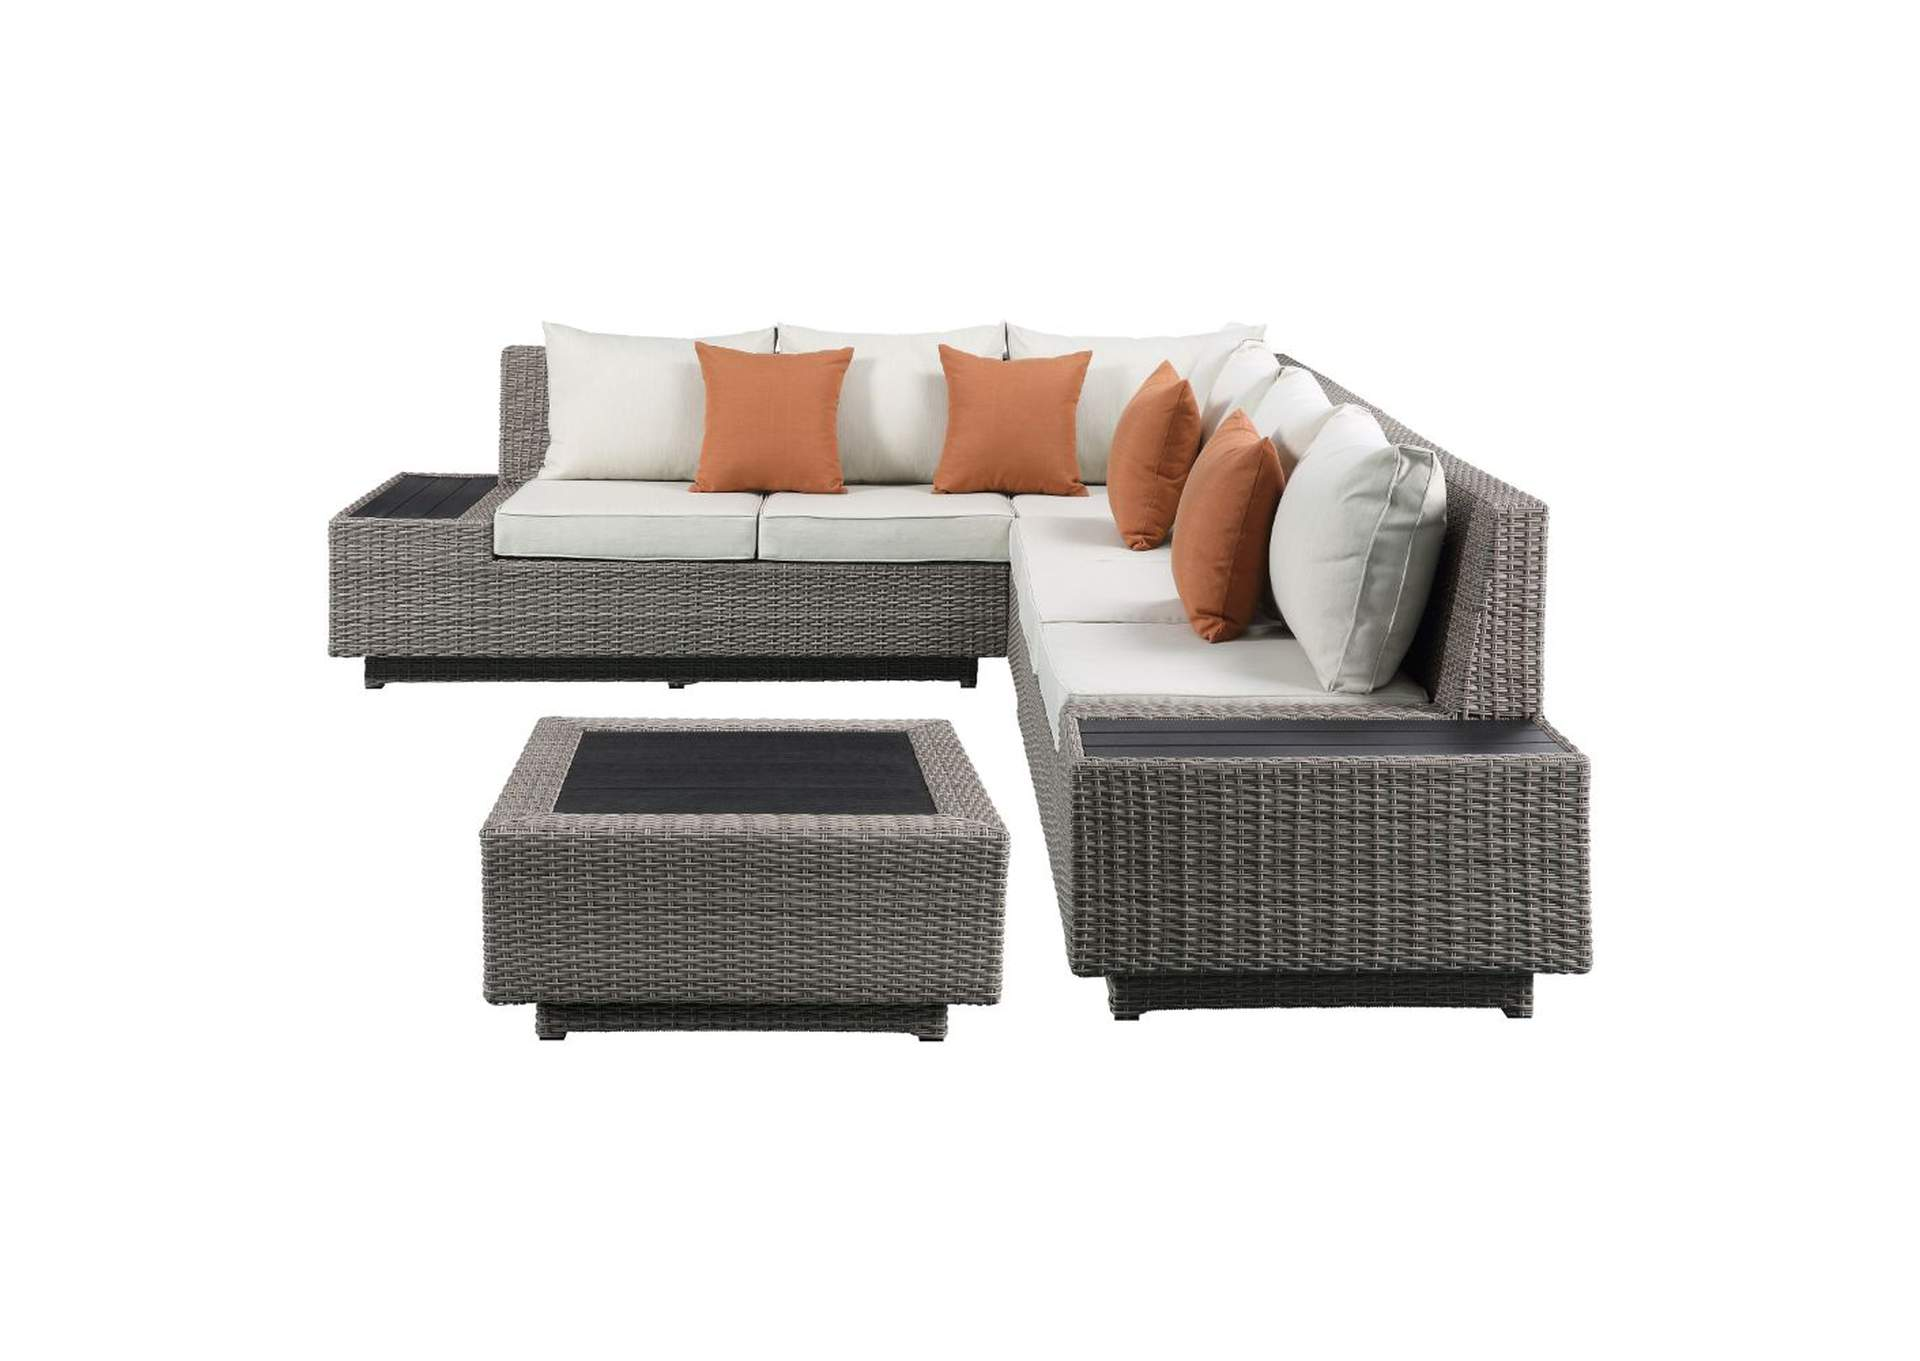 Salena Beige/Gray Patio Sectional & Cocktail Table,Acme